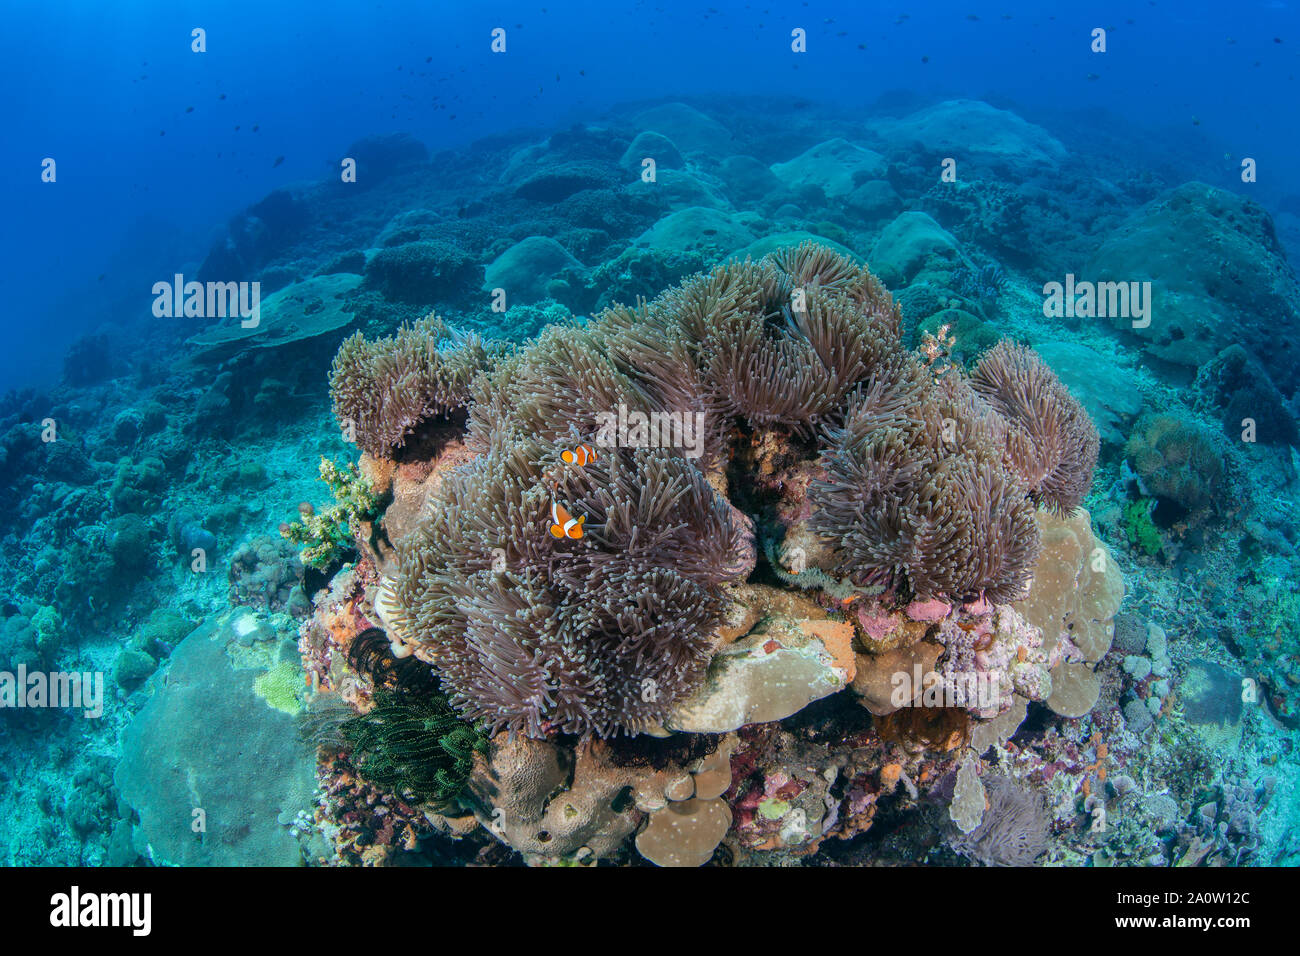 Amphiprion ocellaris clownfish nestling in large magnificent anemone perched on a mountainous coral reef. Nusa Lembongan, Bali, Indonesia. 2016. Stock Photo